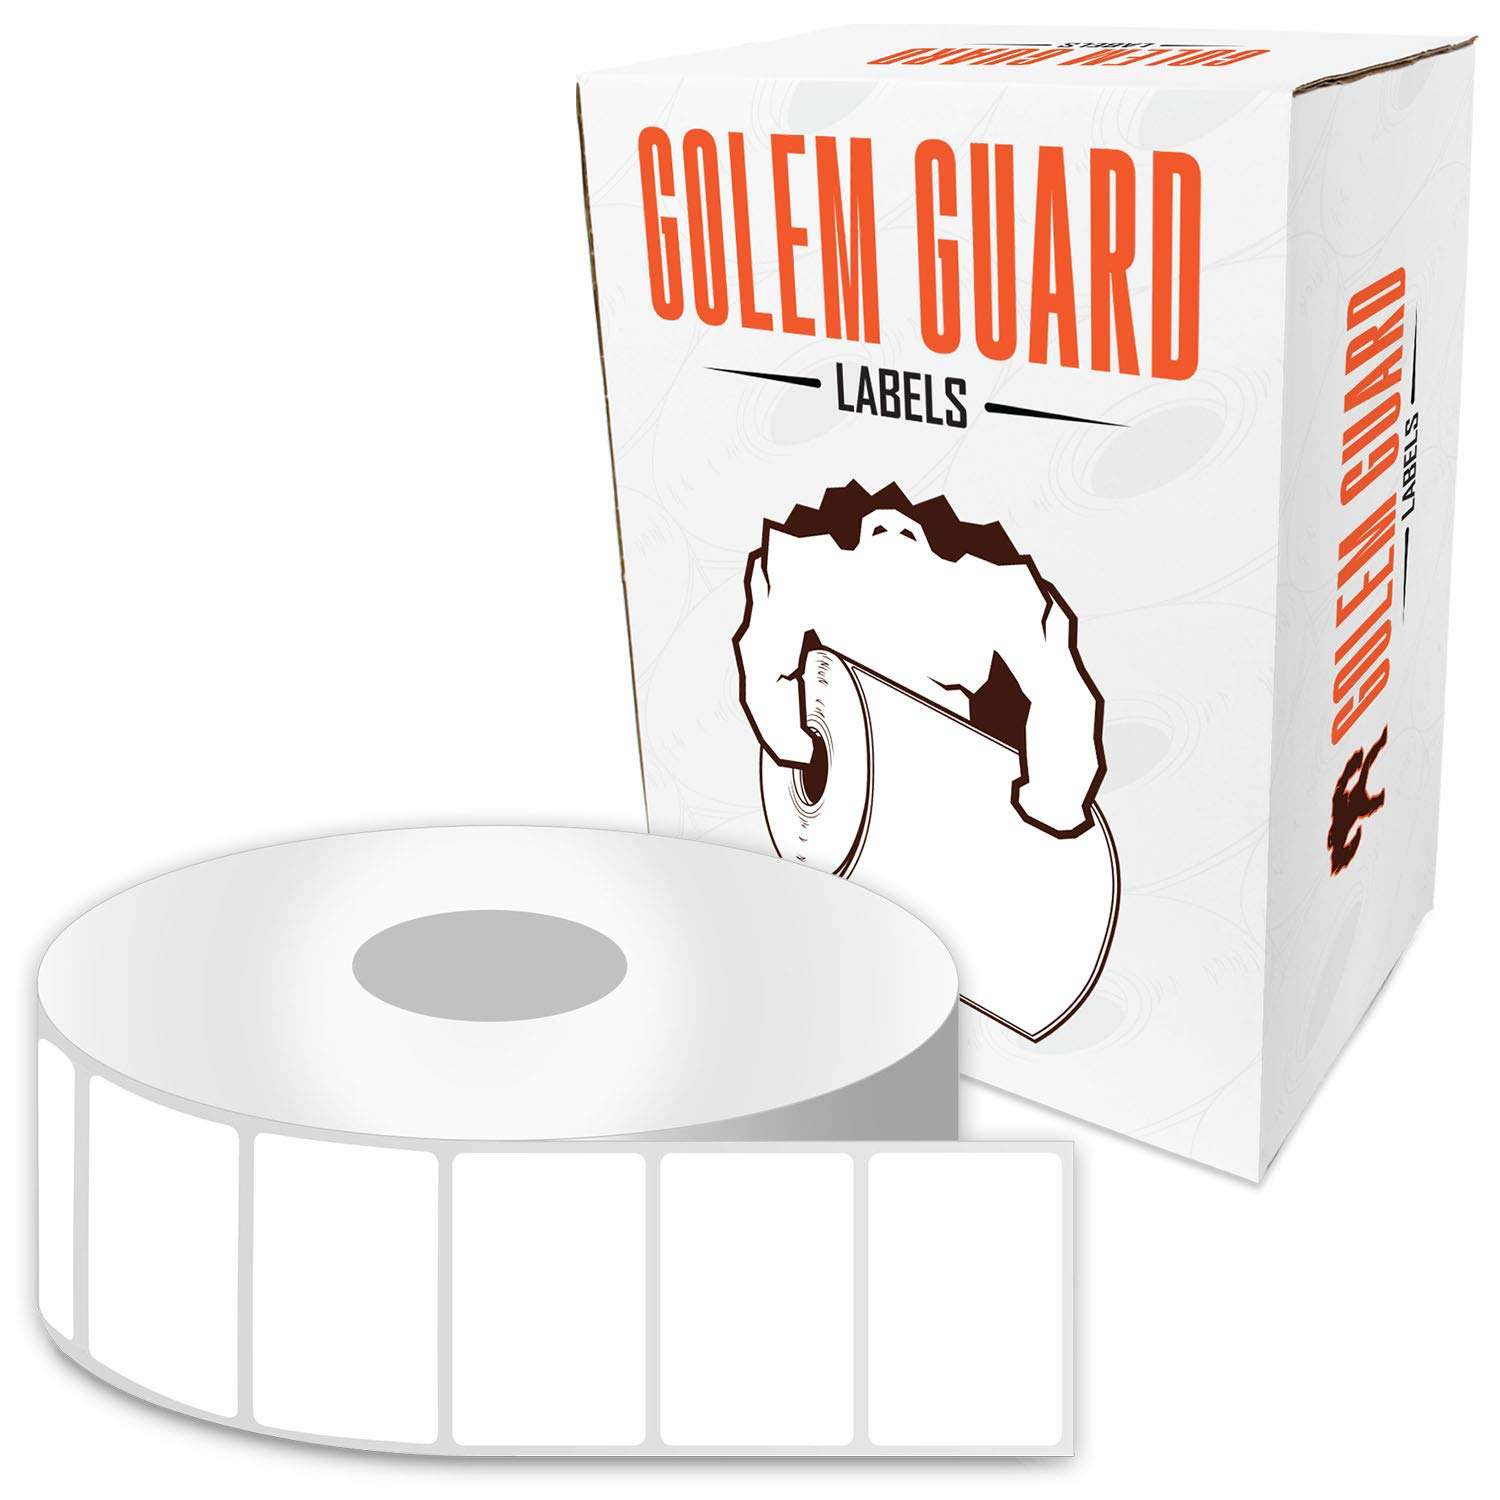 2 x 1 inch GOLEM GUARD Direct Thermal Removable Labels Compatible with Zebra for LP2824 LP2824Z TLP2824 TLP2824Z LP2844 Printers (25 Rolls / 1300 Labels per Roll) by GOLEM GUARD